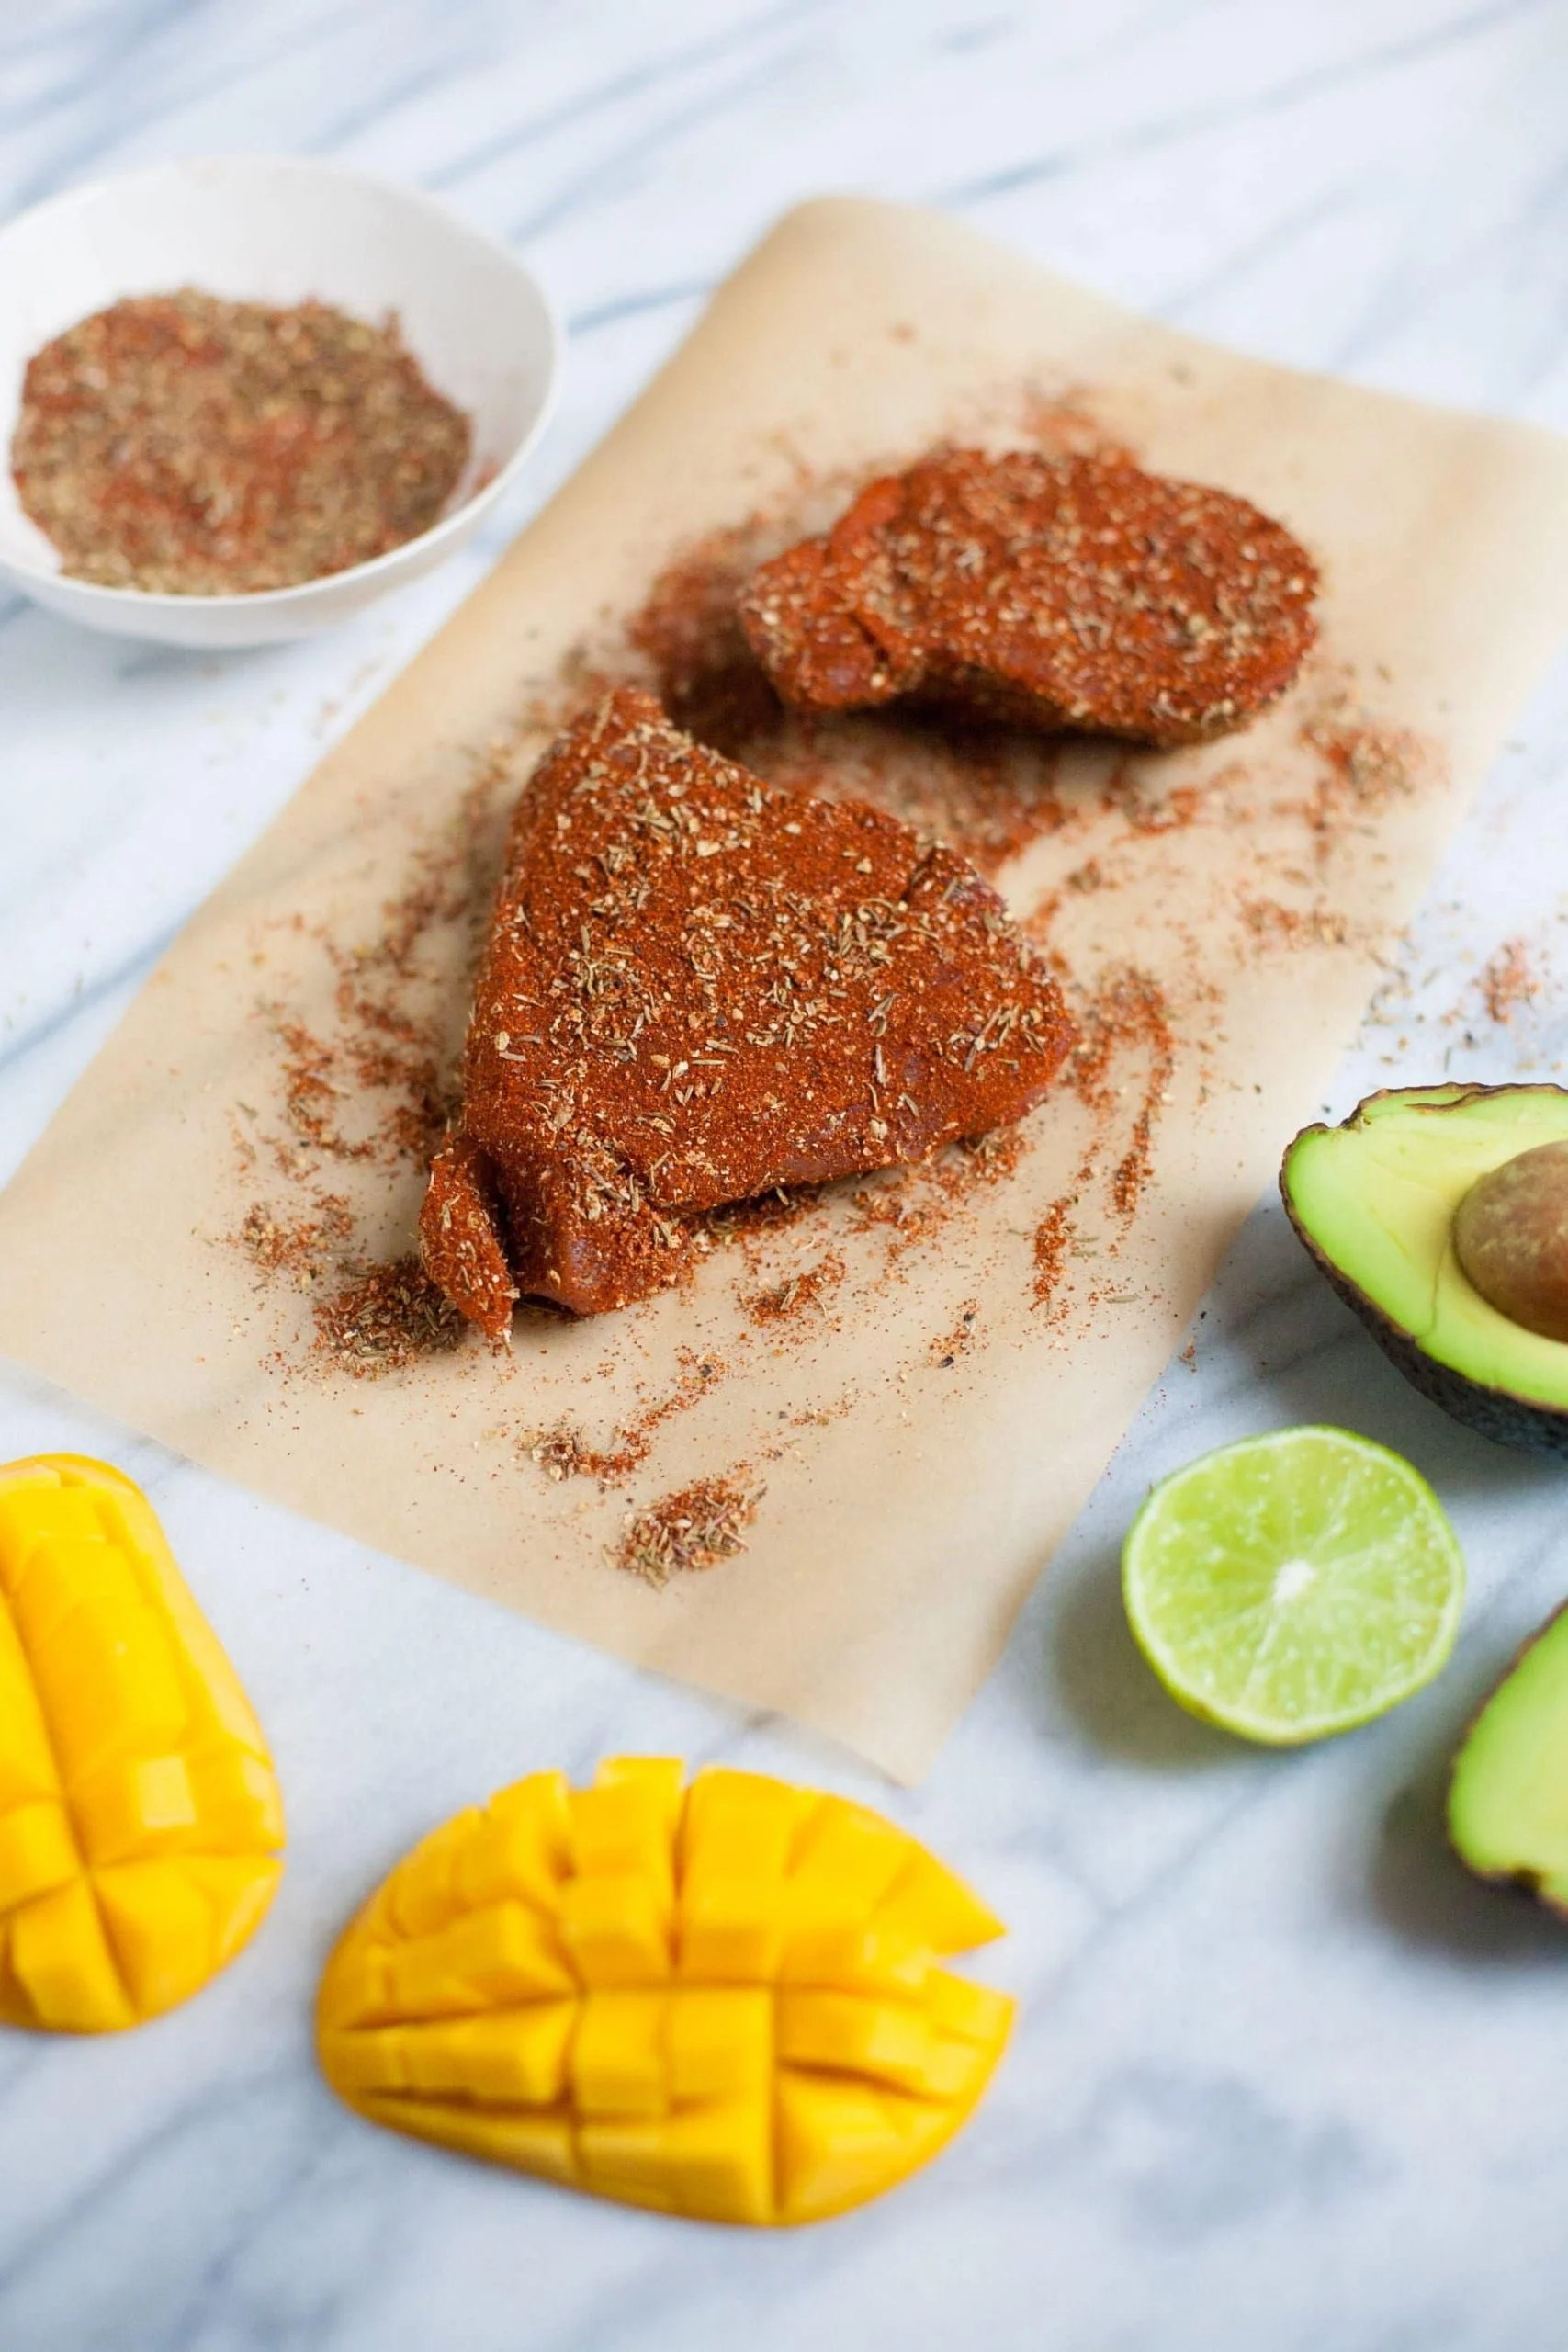 Two tuna steaks covered in homemade blackening seasoning sit on parchment paper with fresh mango halves and avocado halves nearby.